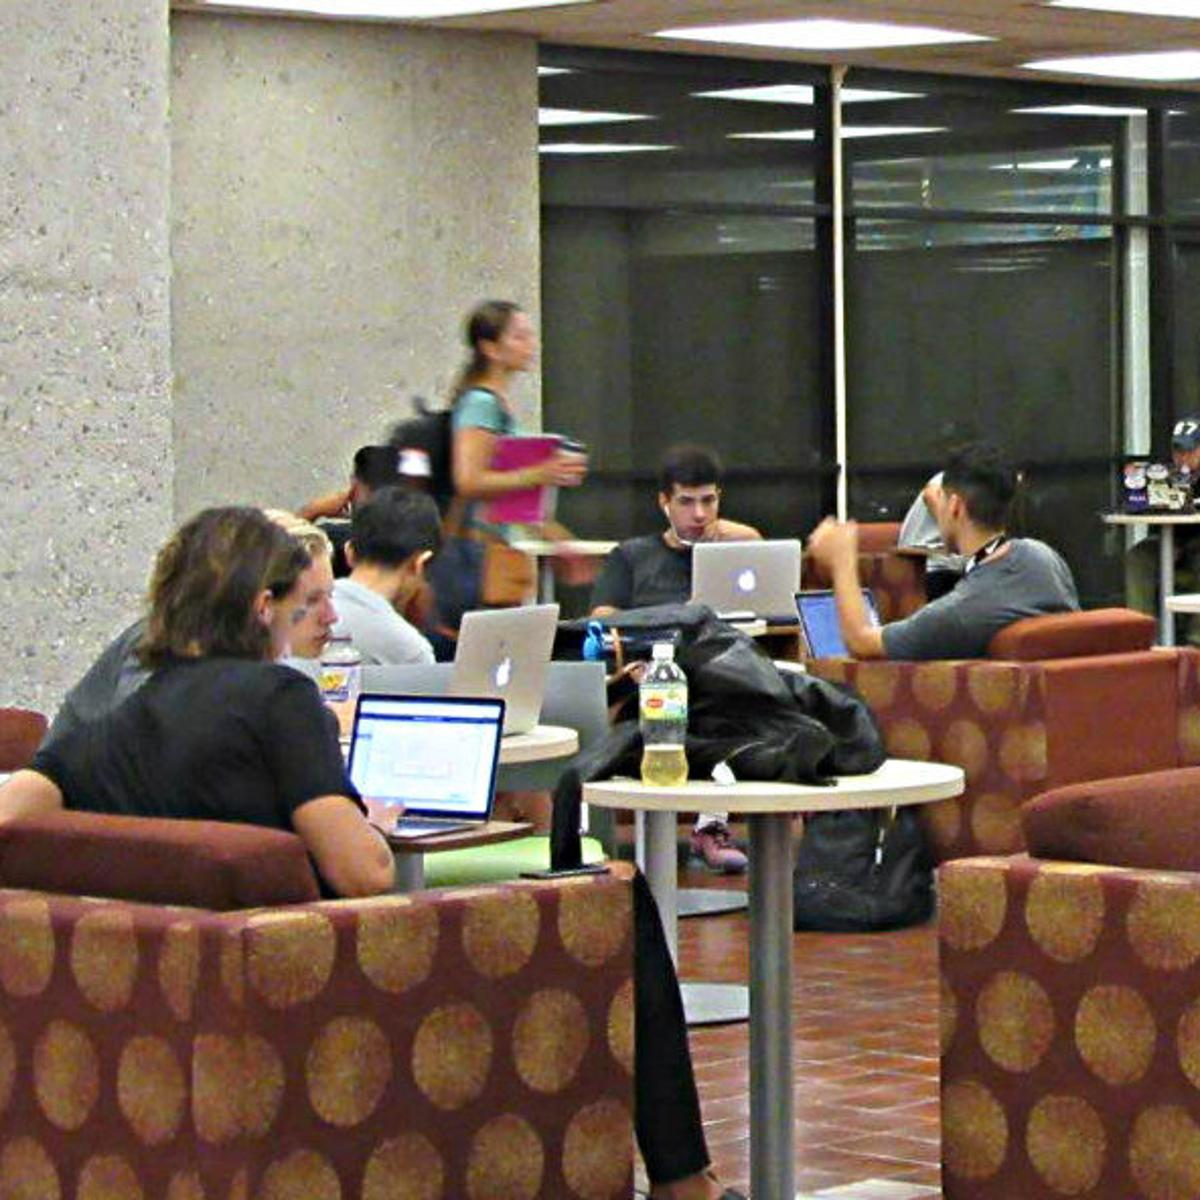 Collaboration Coffee Cal State L A Library Adapts To A New Generation Of Students Education Theeastsiderla Com